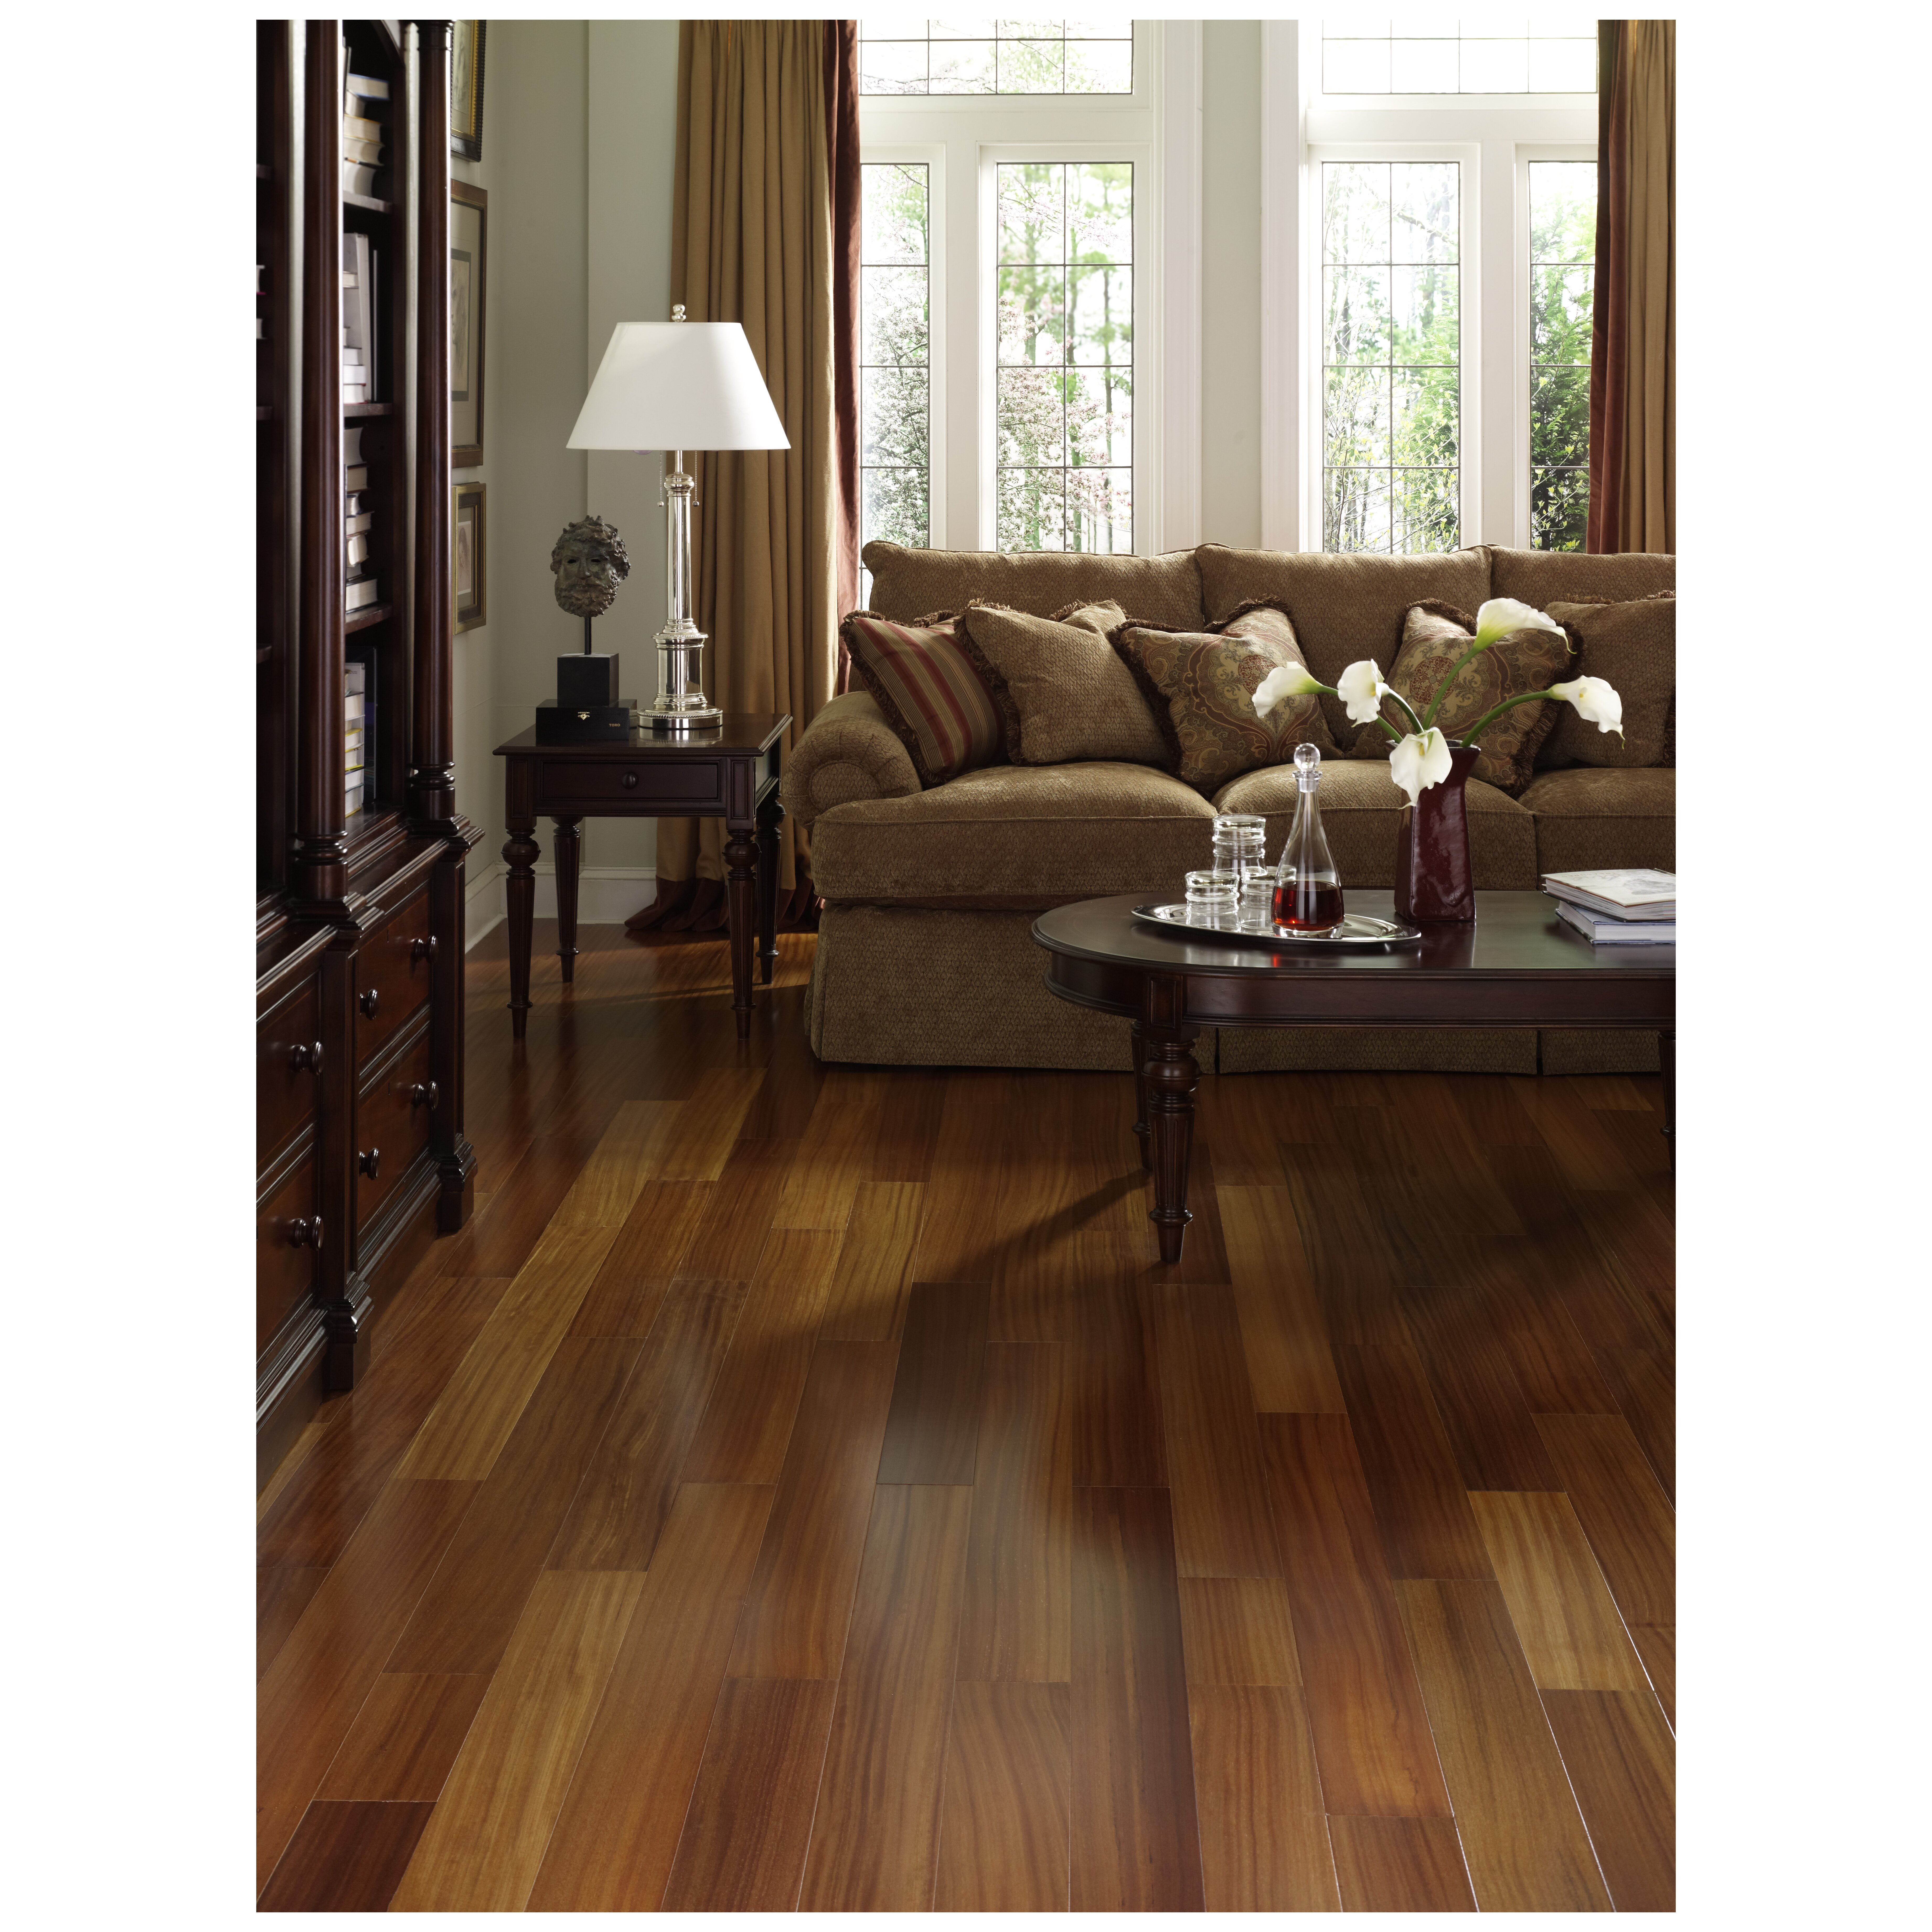 Style Selections Laminate Flooring for flooring i decided to use style selections natural acacia smooth laminate wood planks pictured on the left not a link to the product Style Selections Brazilian Teak Wood Planks Laminate Flooring